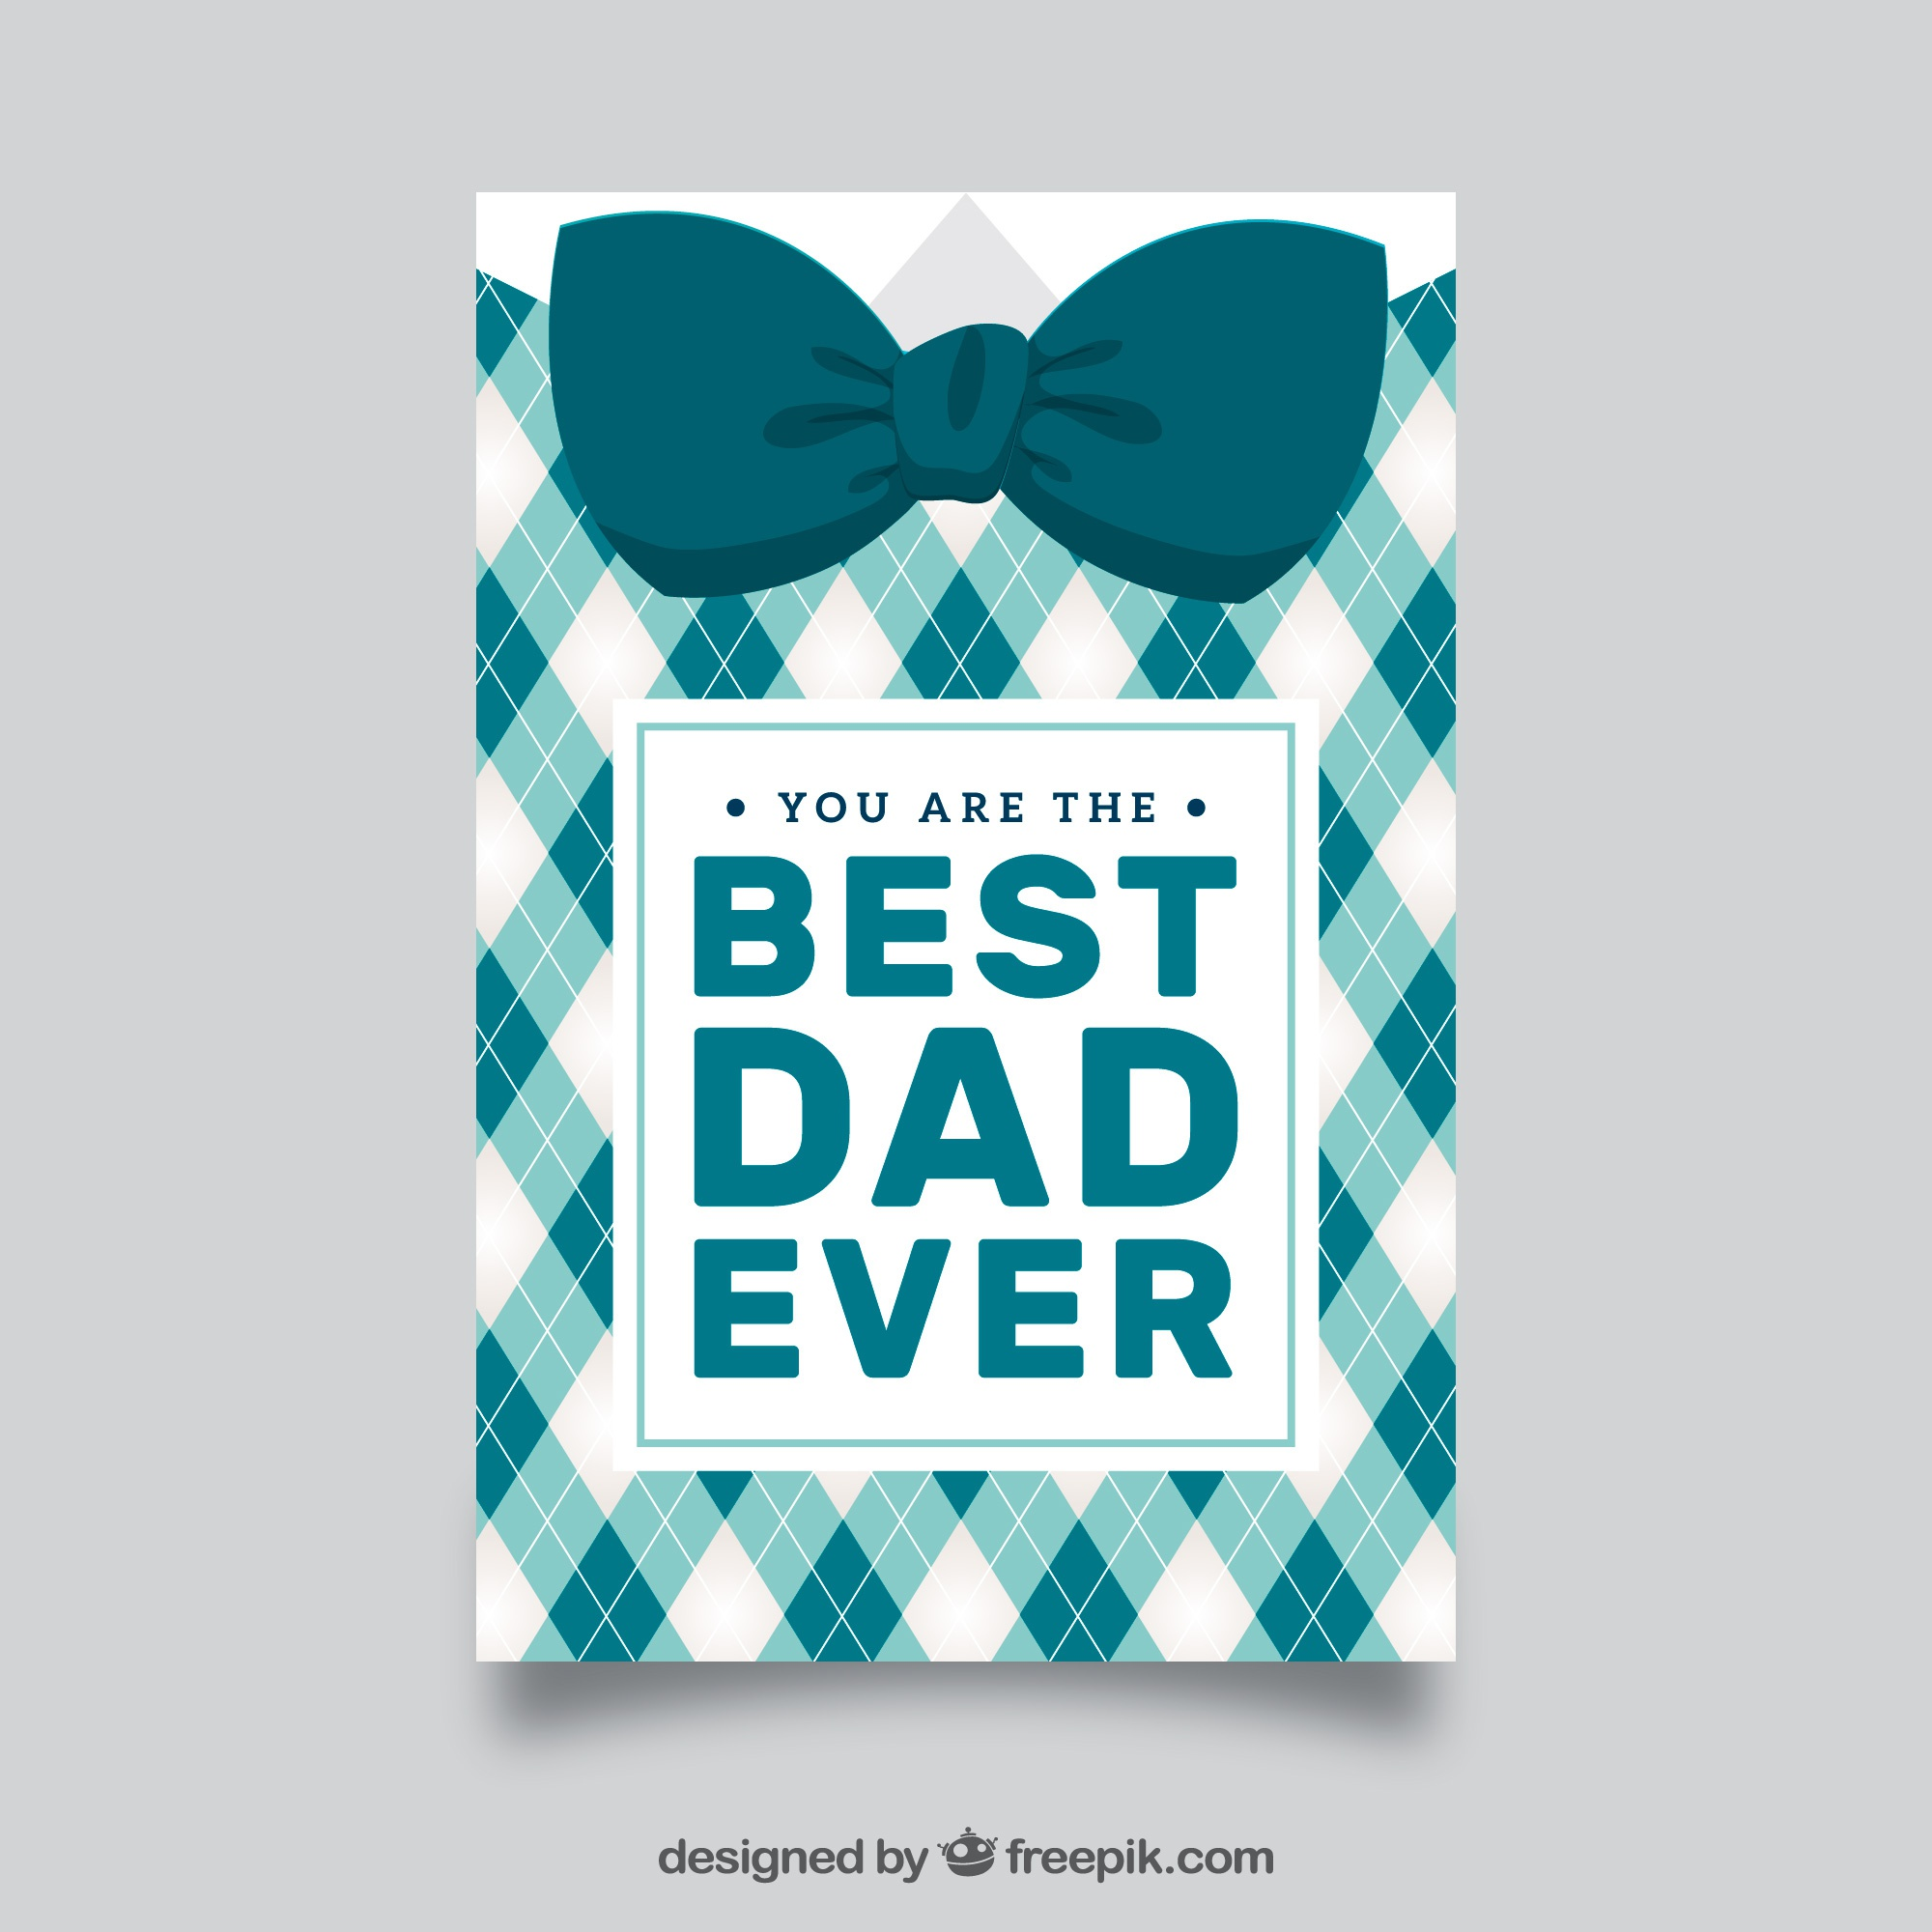 Father's day greeting card with decorative bow tie